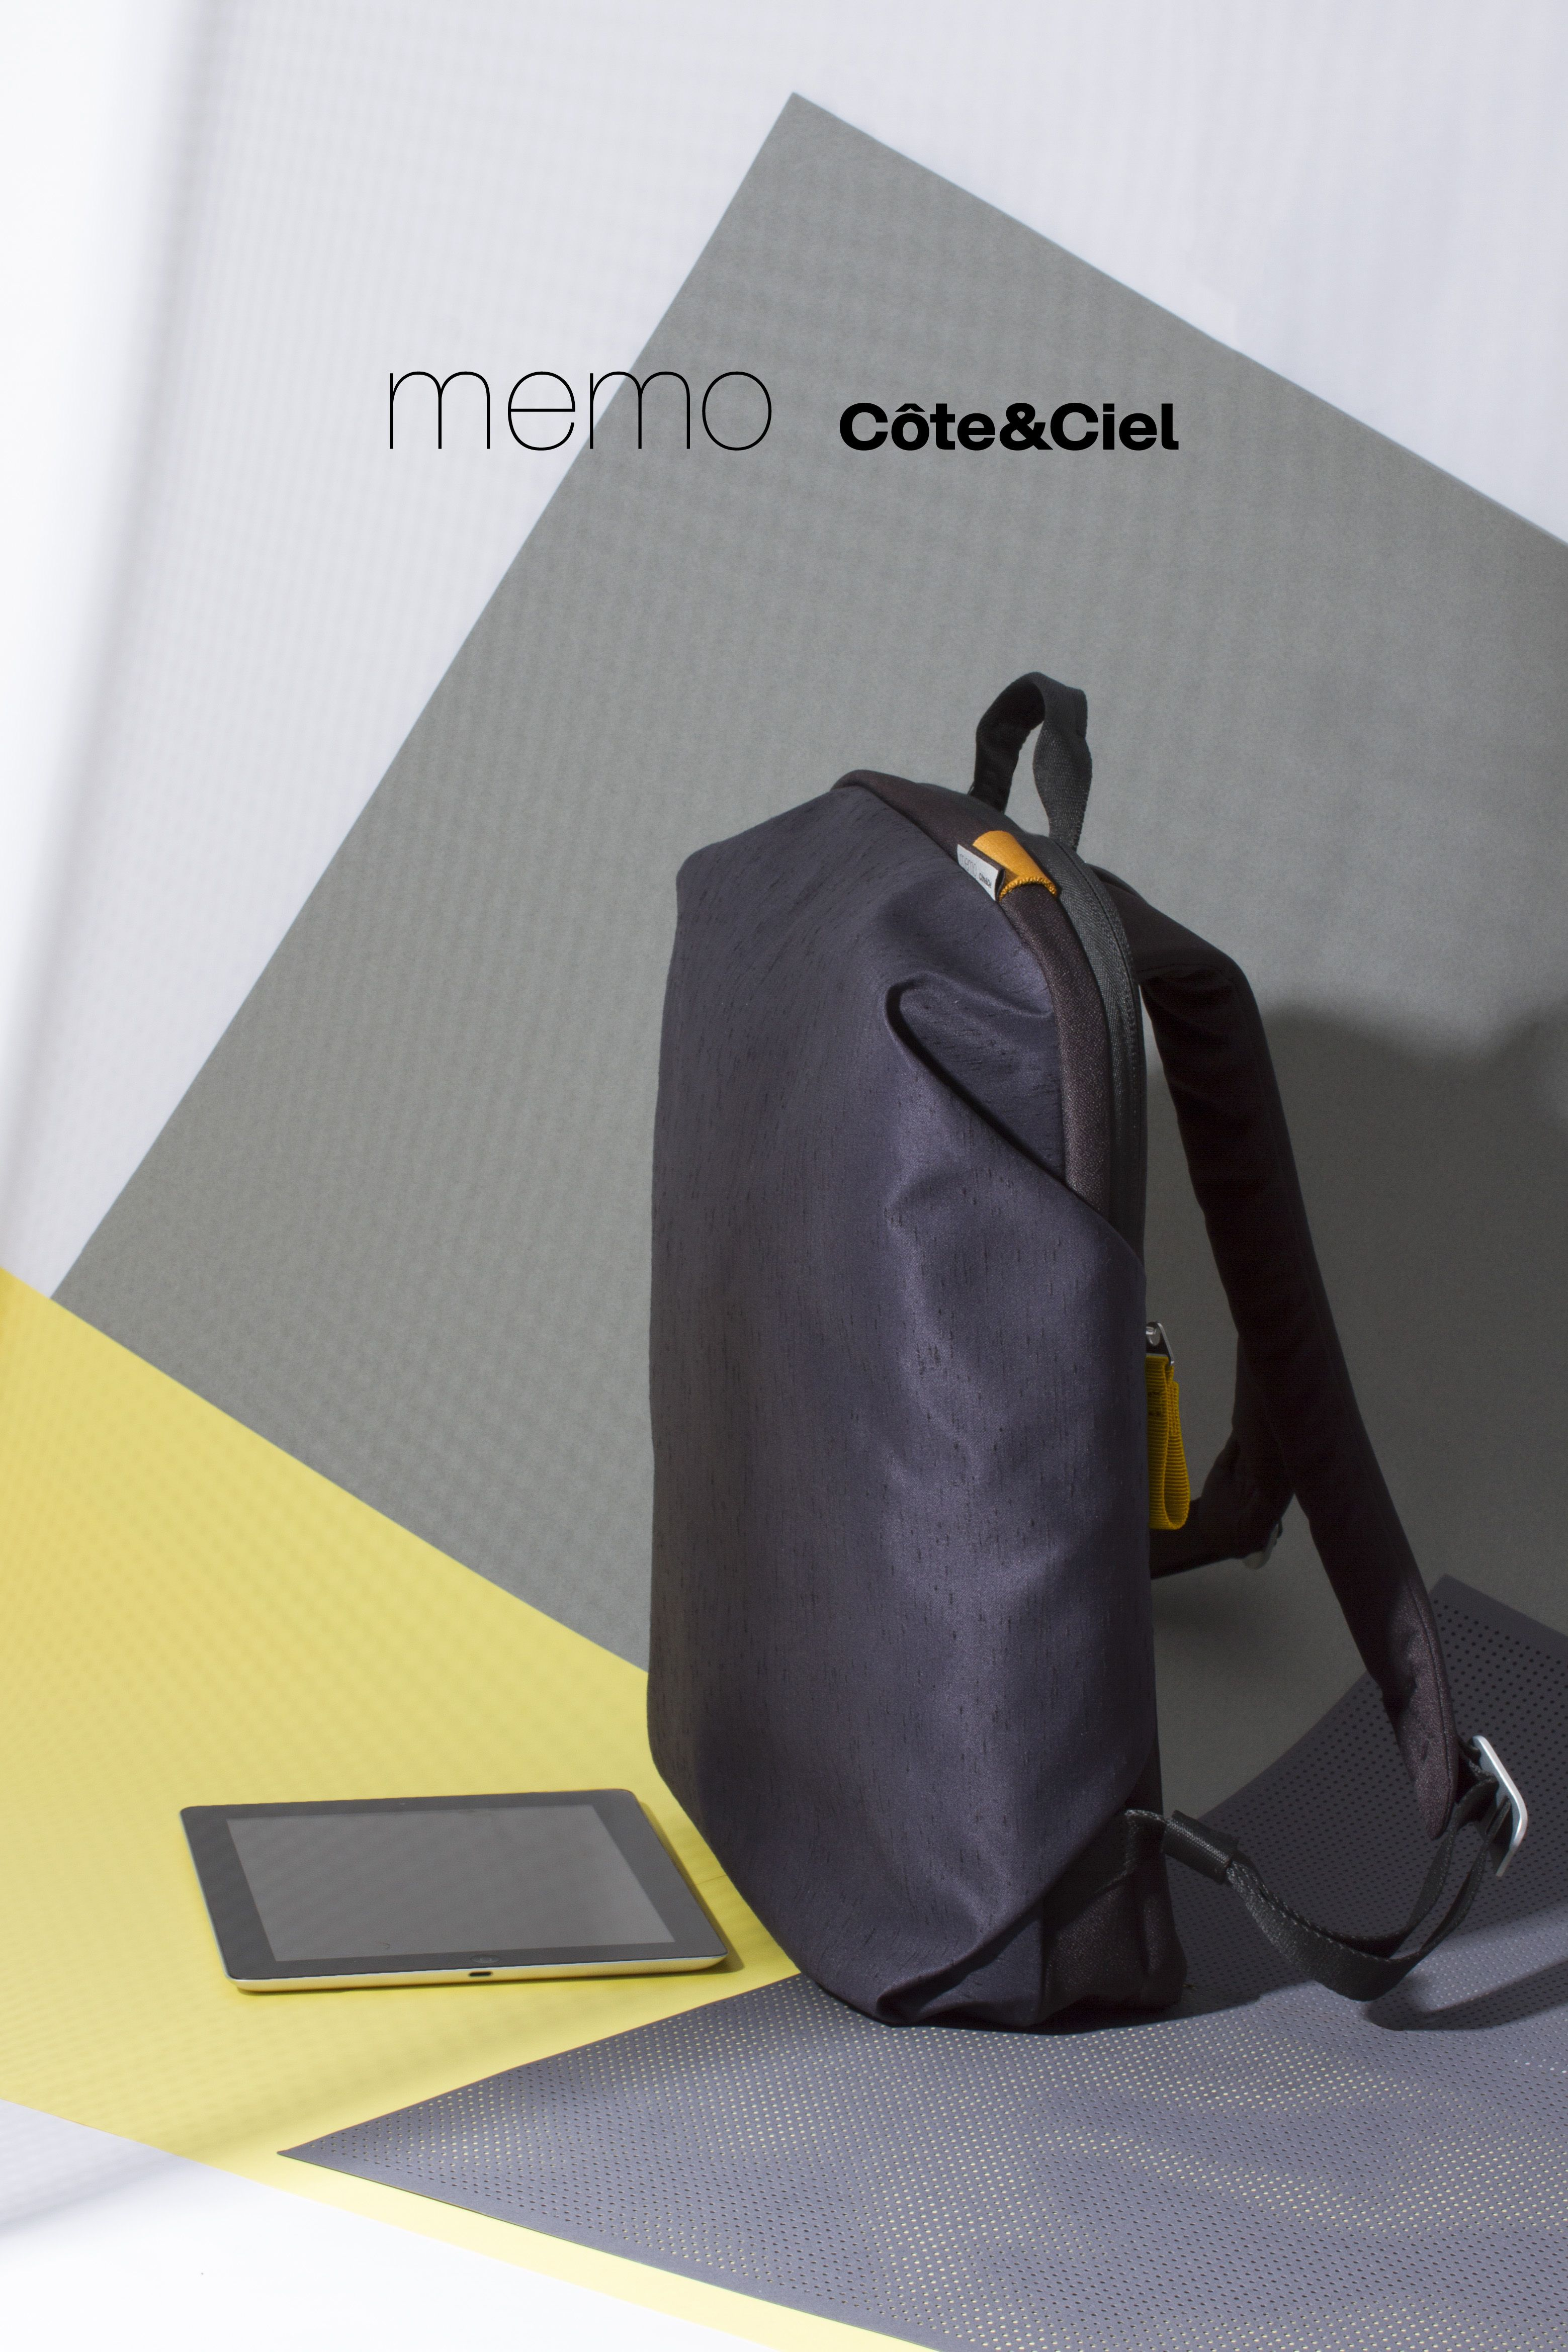 3e085d00dbb44d Midnight Blue Zephyr Backpack - The memo Côte&Ciel is a completely new  minimalist diffusion line focused on lightweight functionality.